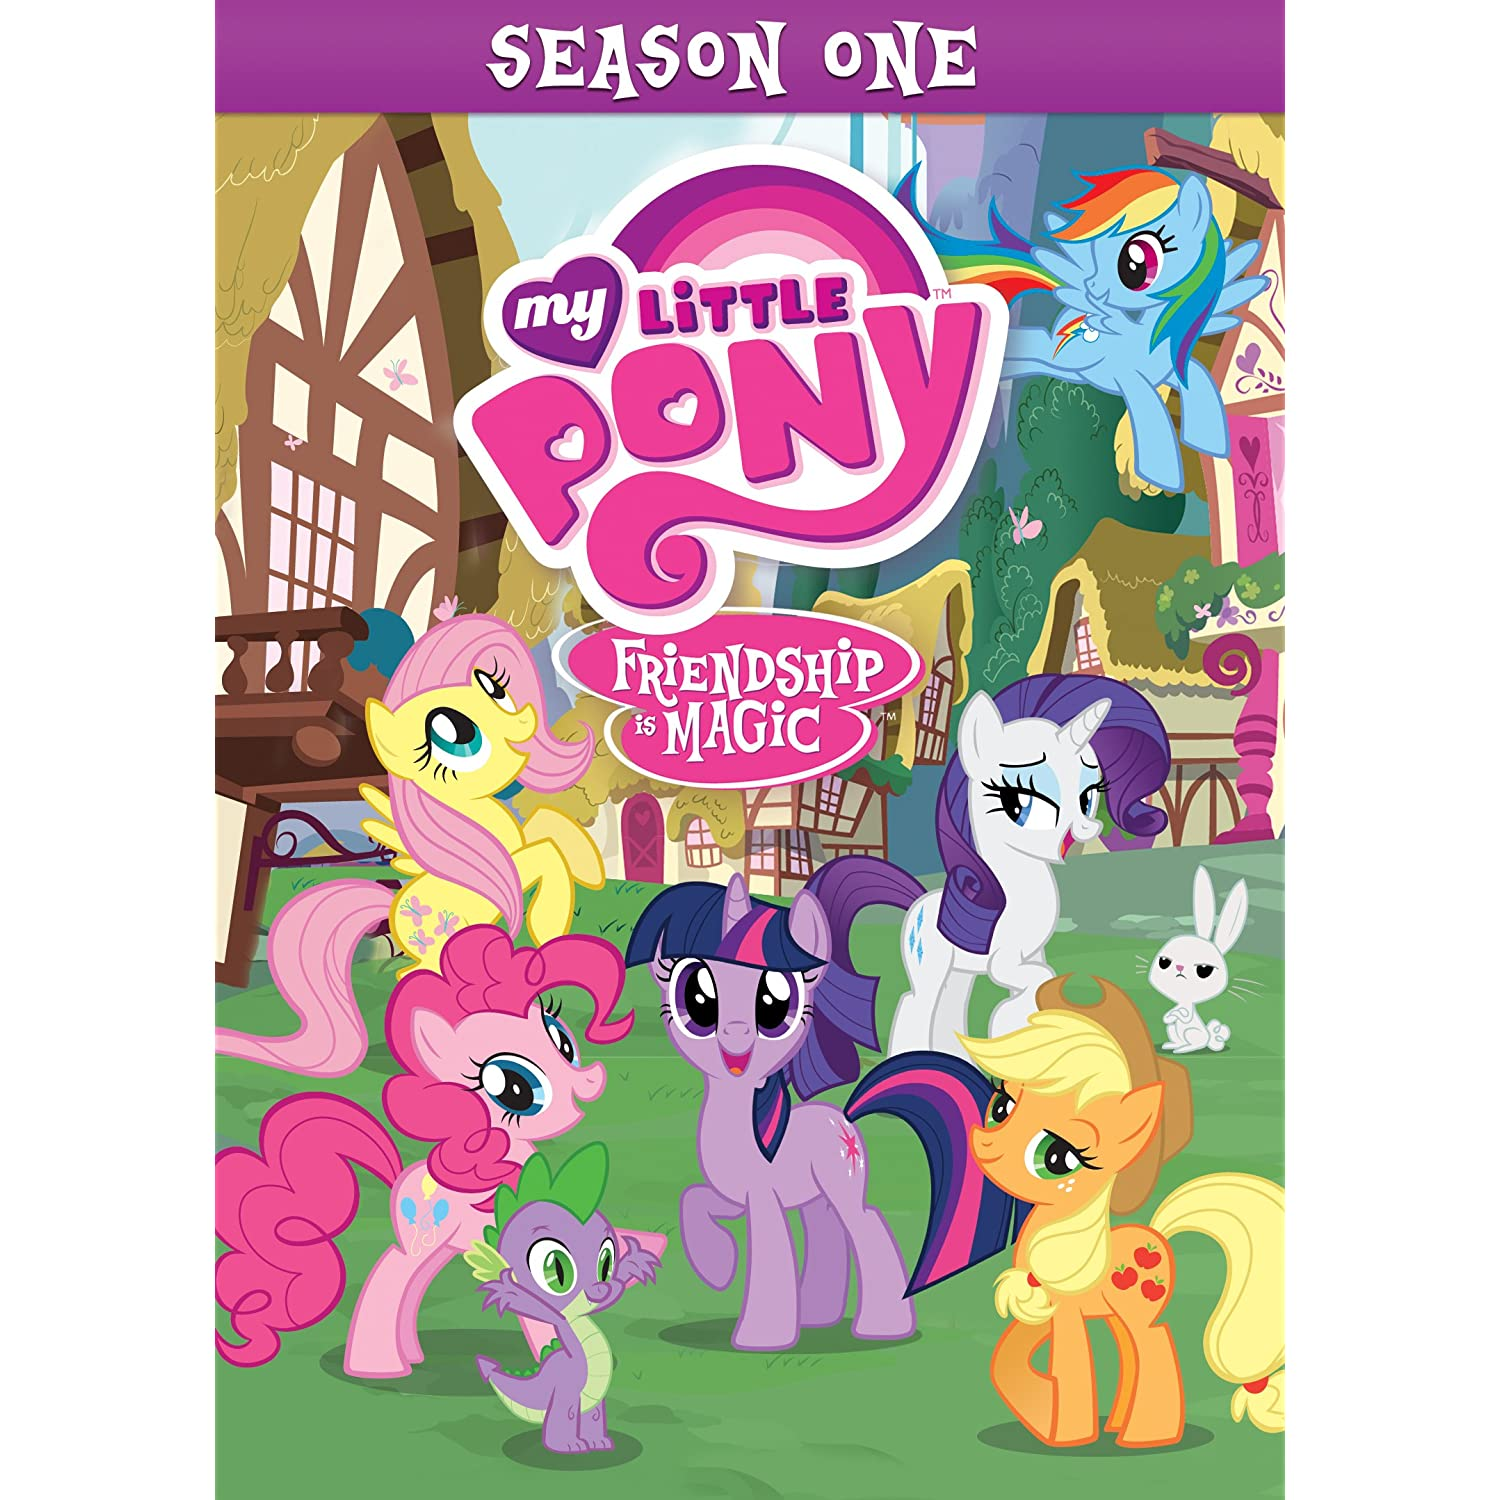 My Little Pony Friendship is Magic dvd season 1